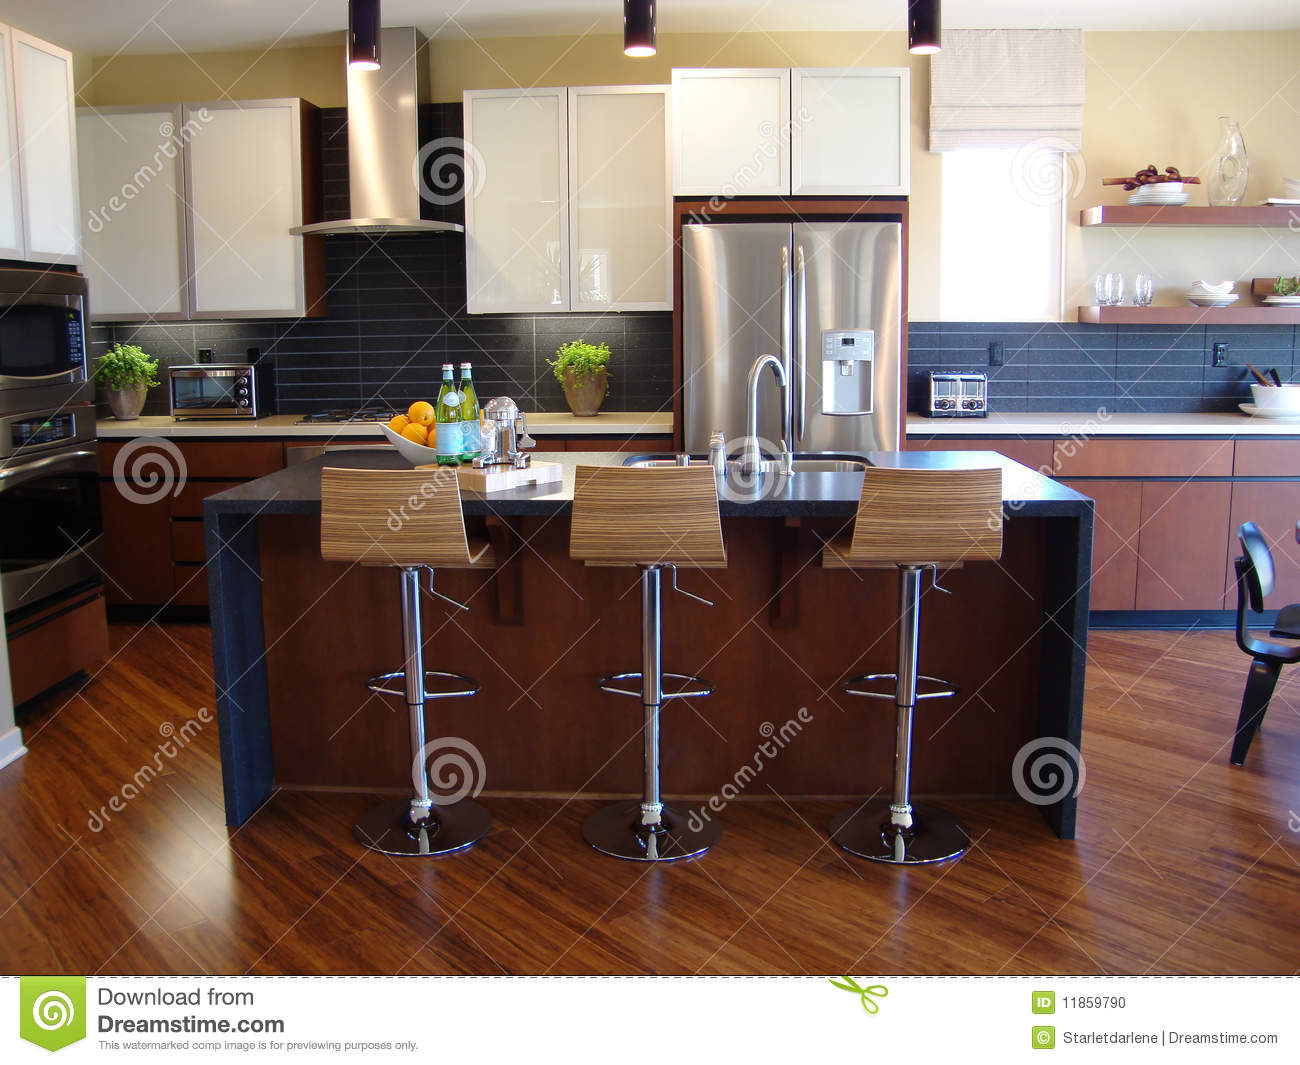 Belle cuisine moderne photo stock image 11859790 for Belle cuisine moderne